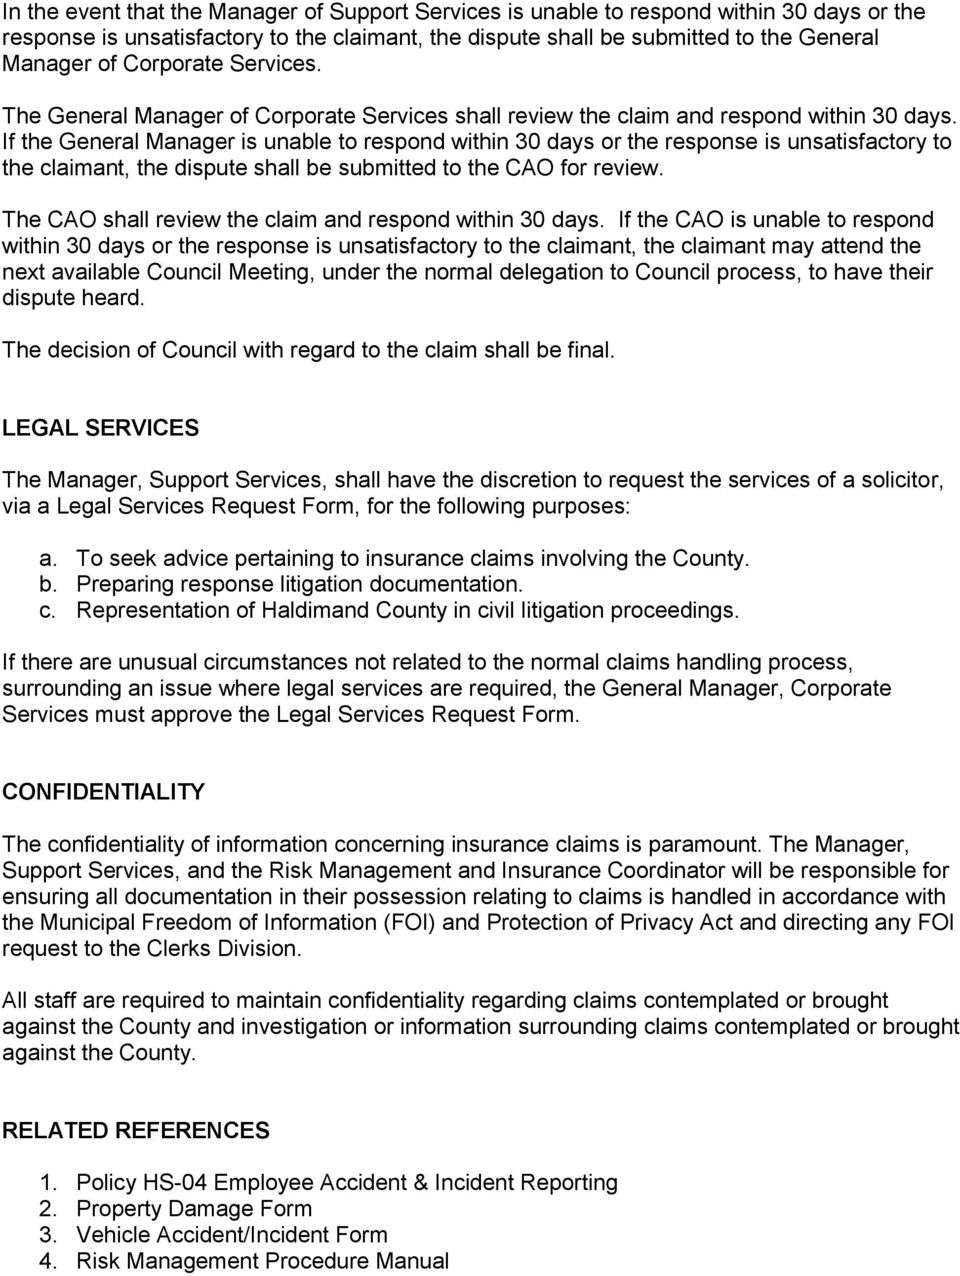 If the General Manager is unable to respond within 30 days or the response is unsatisfactory to the claimant, the dispute shall be submitted to the CAO for review.